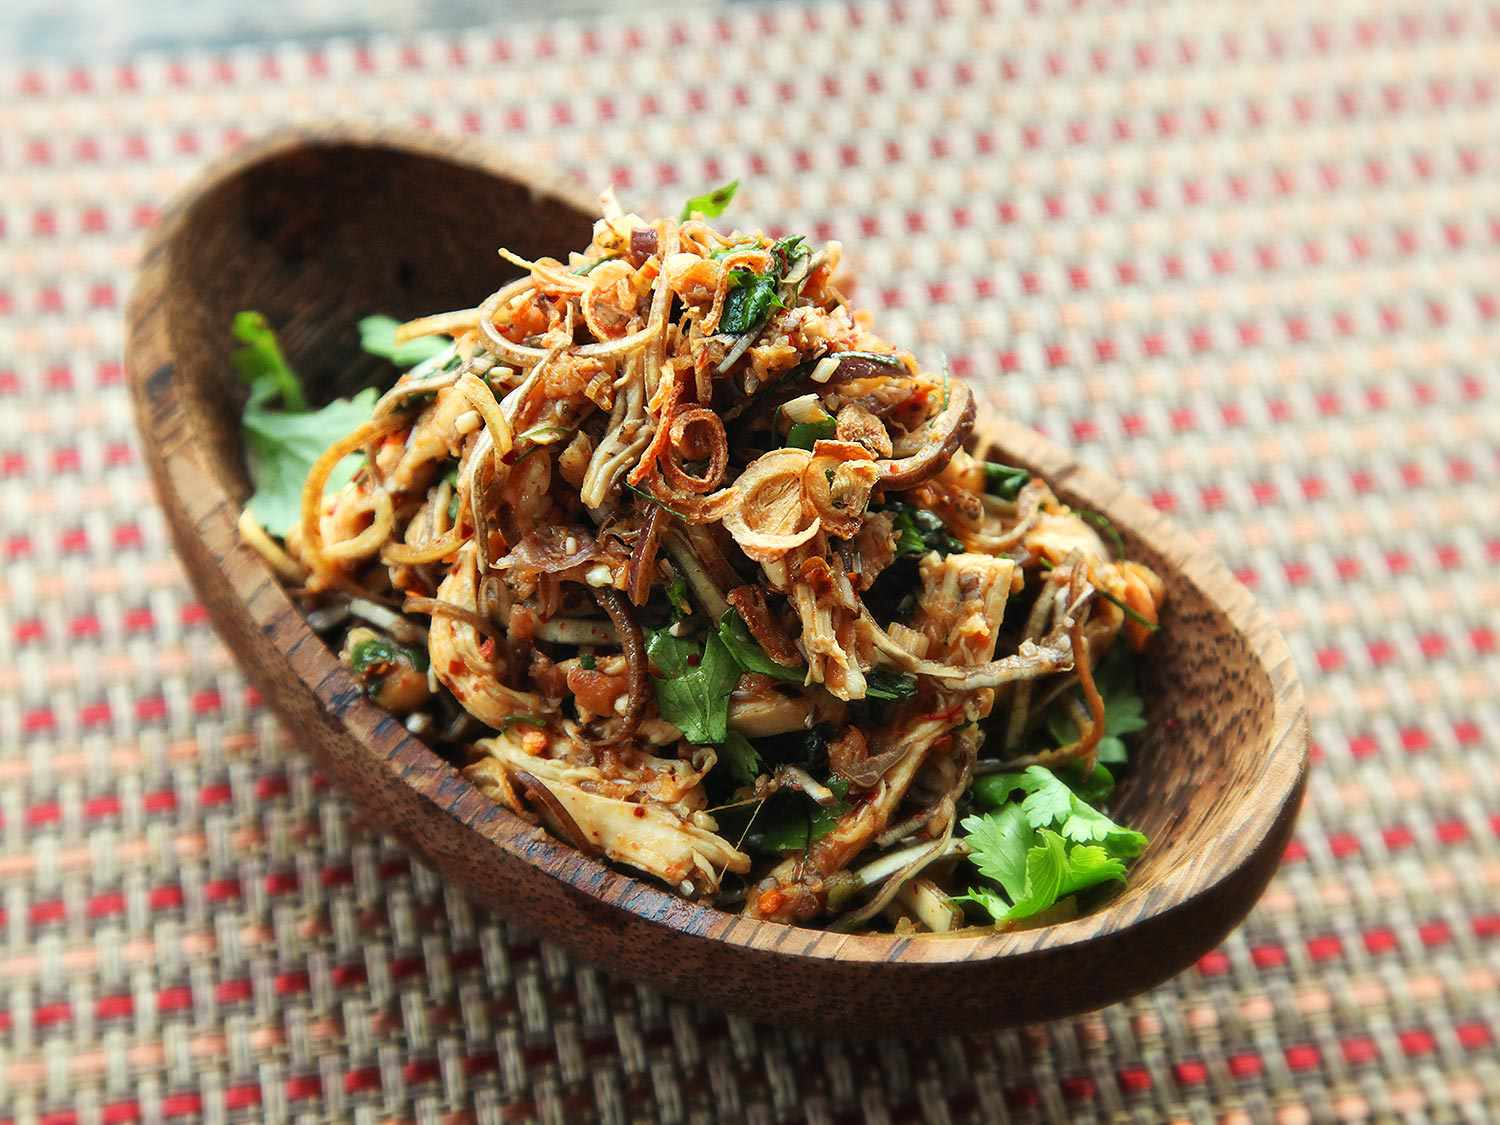 A wooden boat-shaped dish holding a Thai salad of poached chicken, banana blossom, fried shallots, fried garlic, fried lemongrass, and spicy dressing